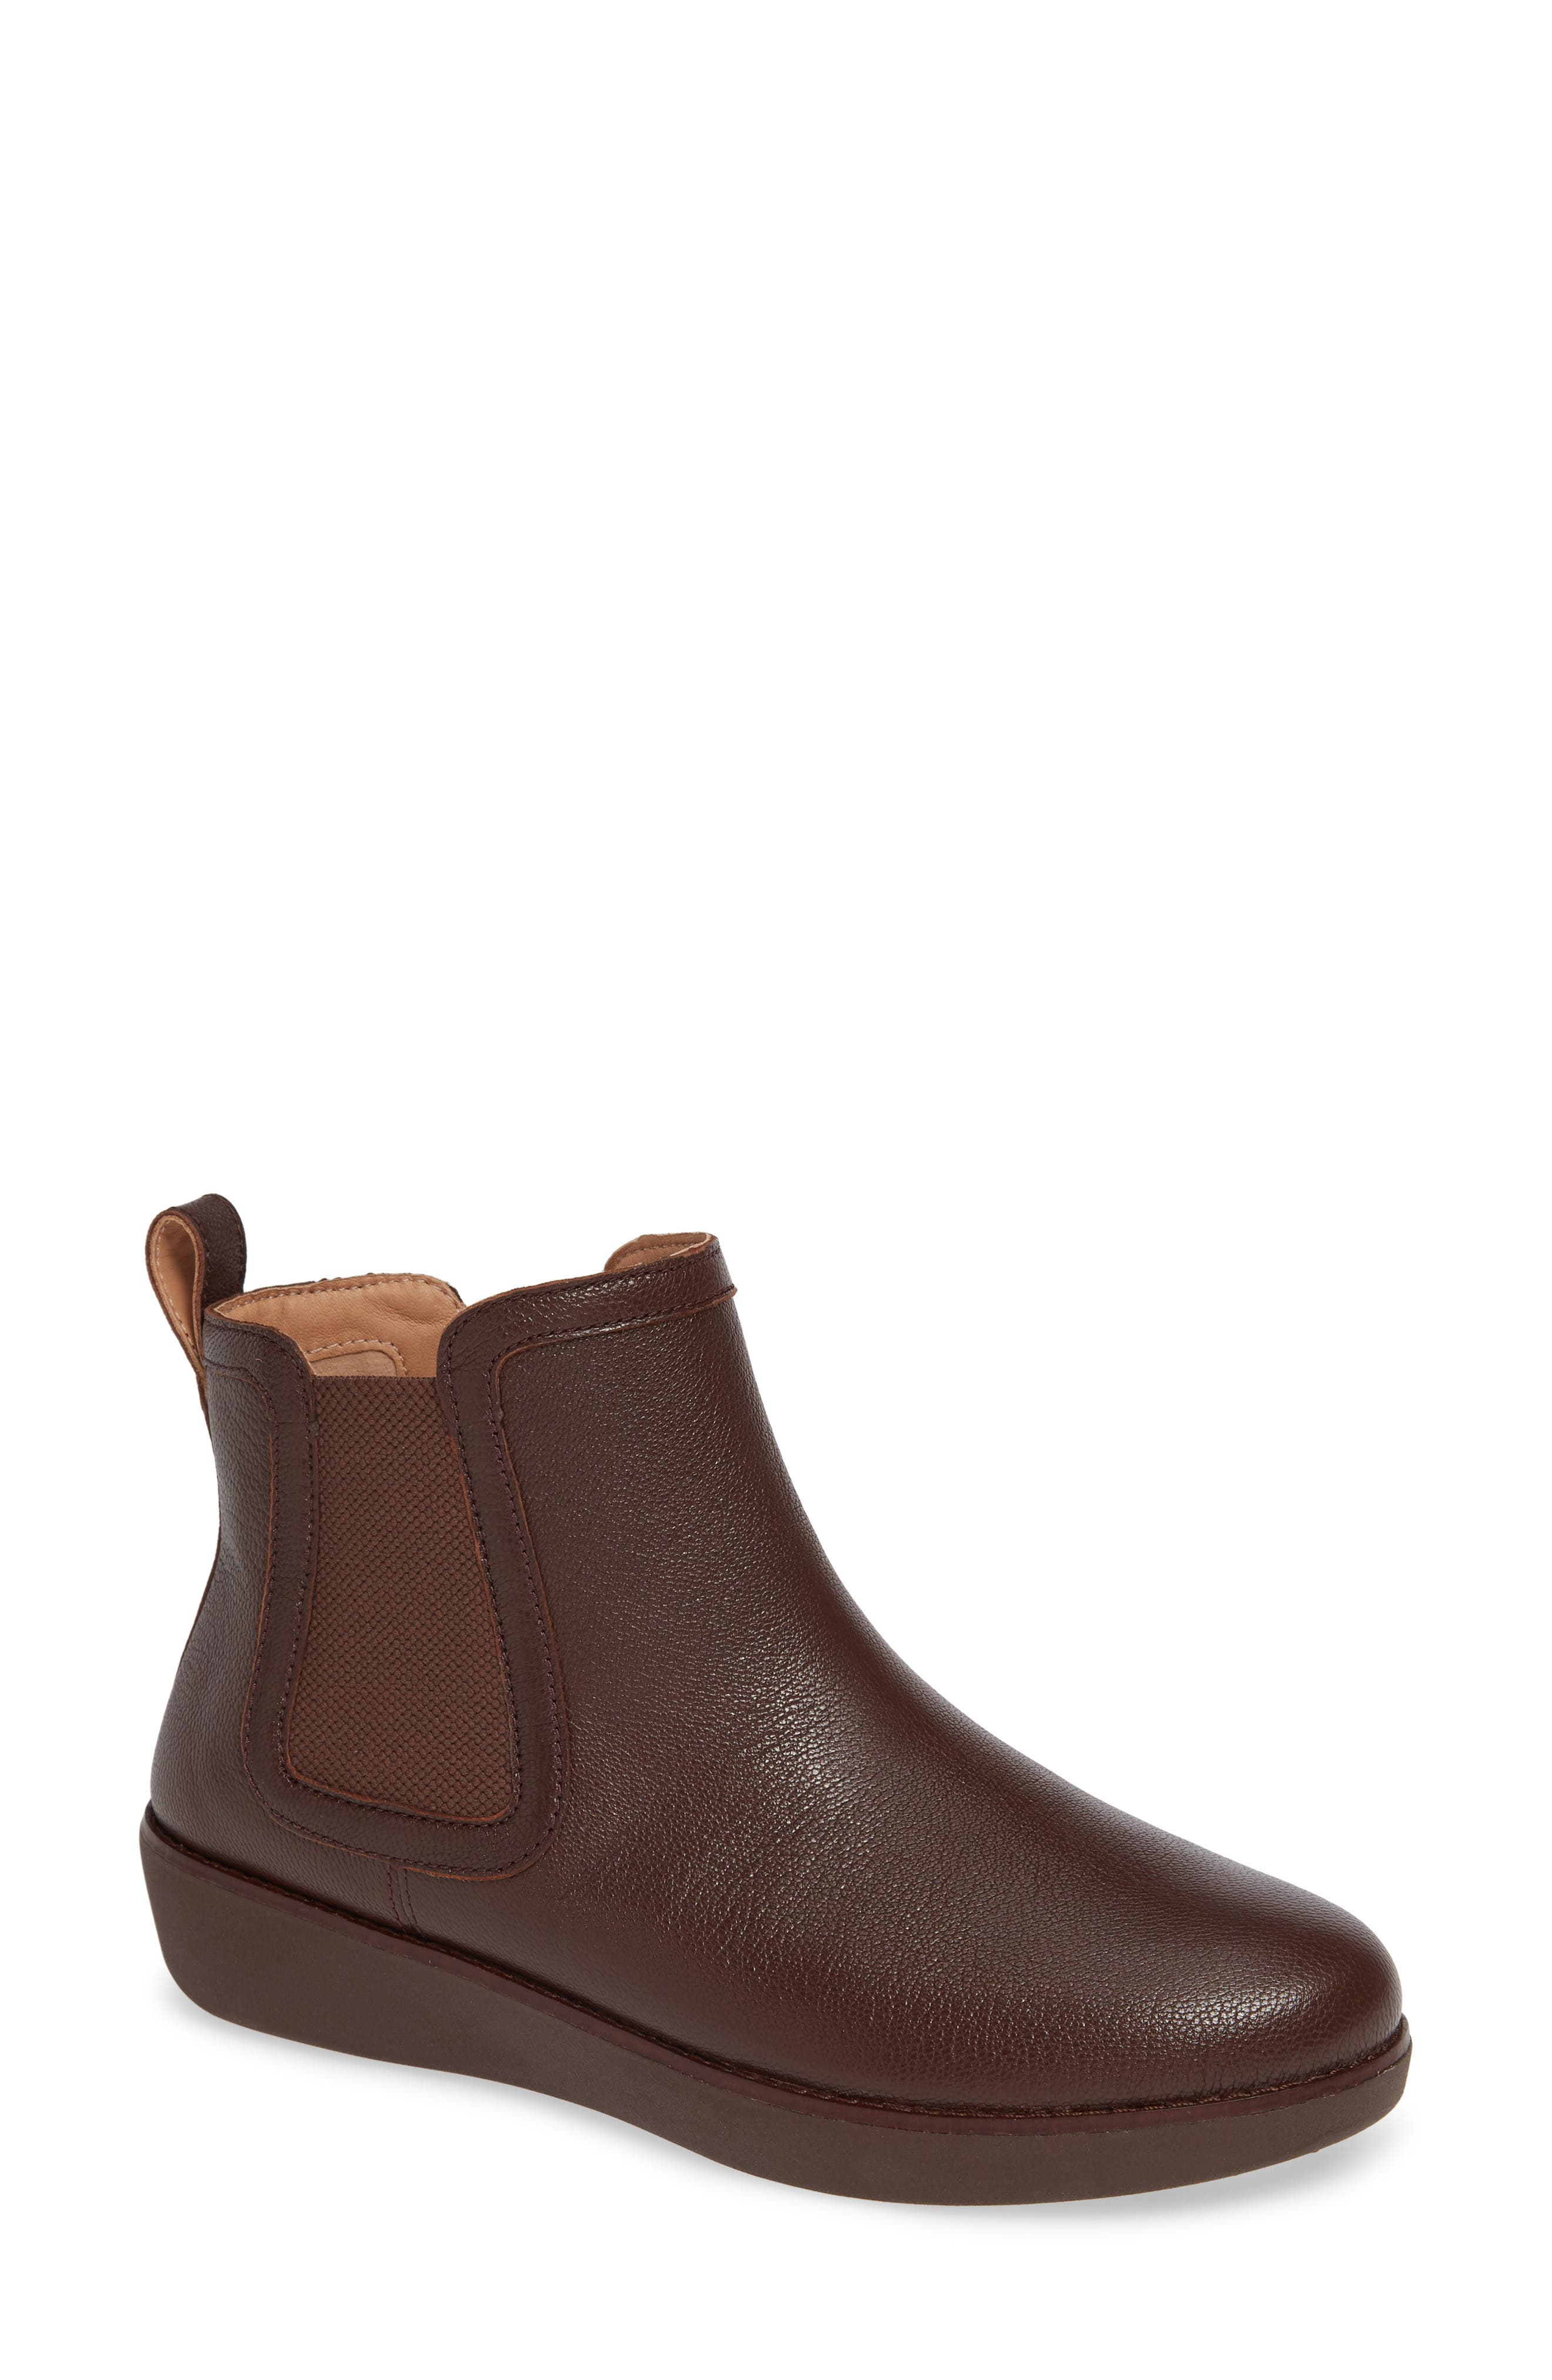 Fitflop Chai Bootie, Brown